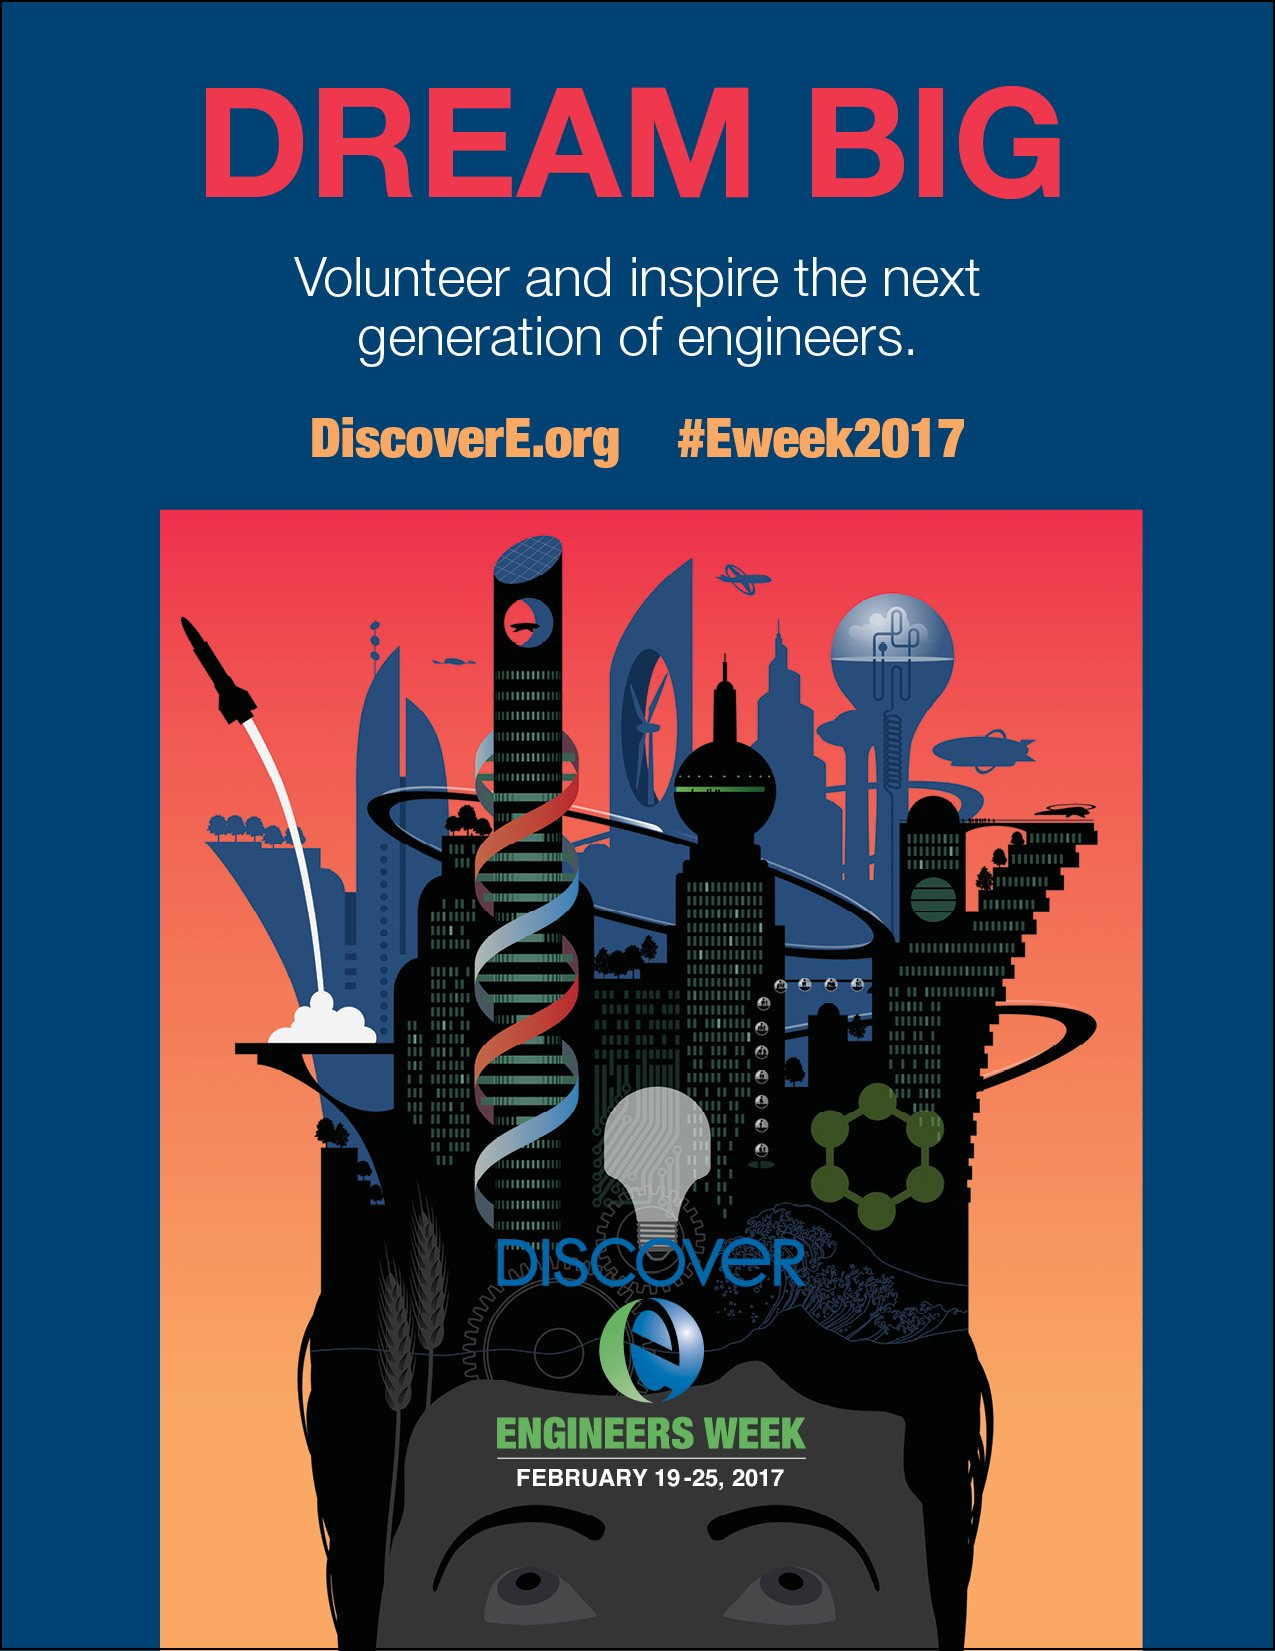 We're celebrating #eweek2017 by sharing how our employees make a difference by advocating the importance of engineering https://t.co/lP2RKp0Za1